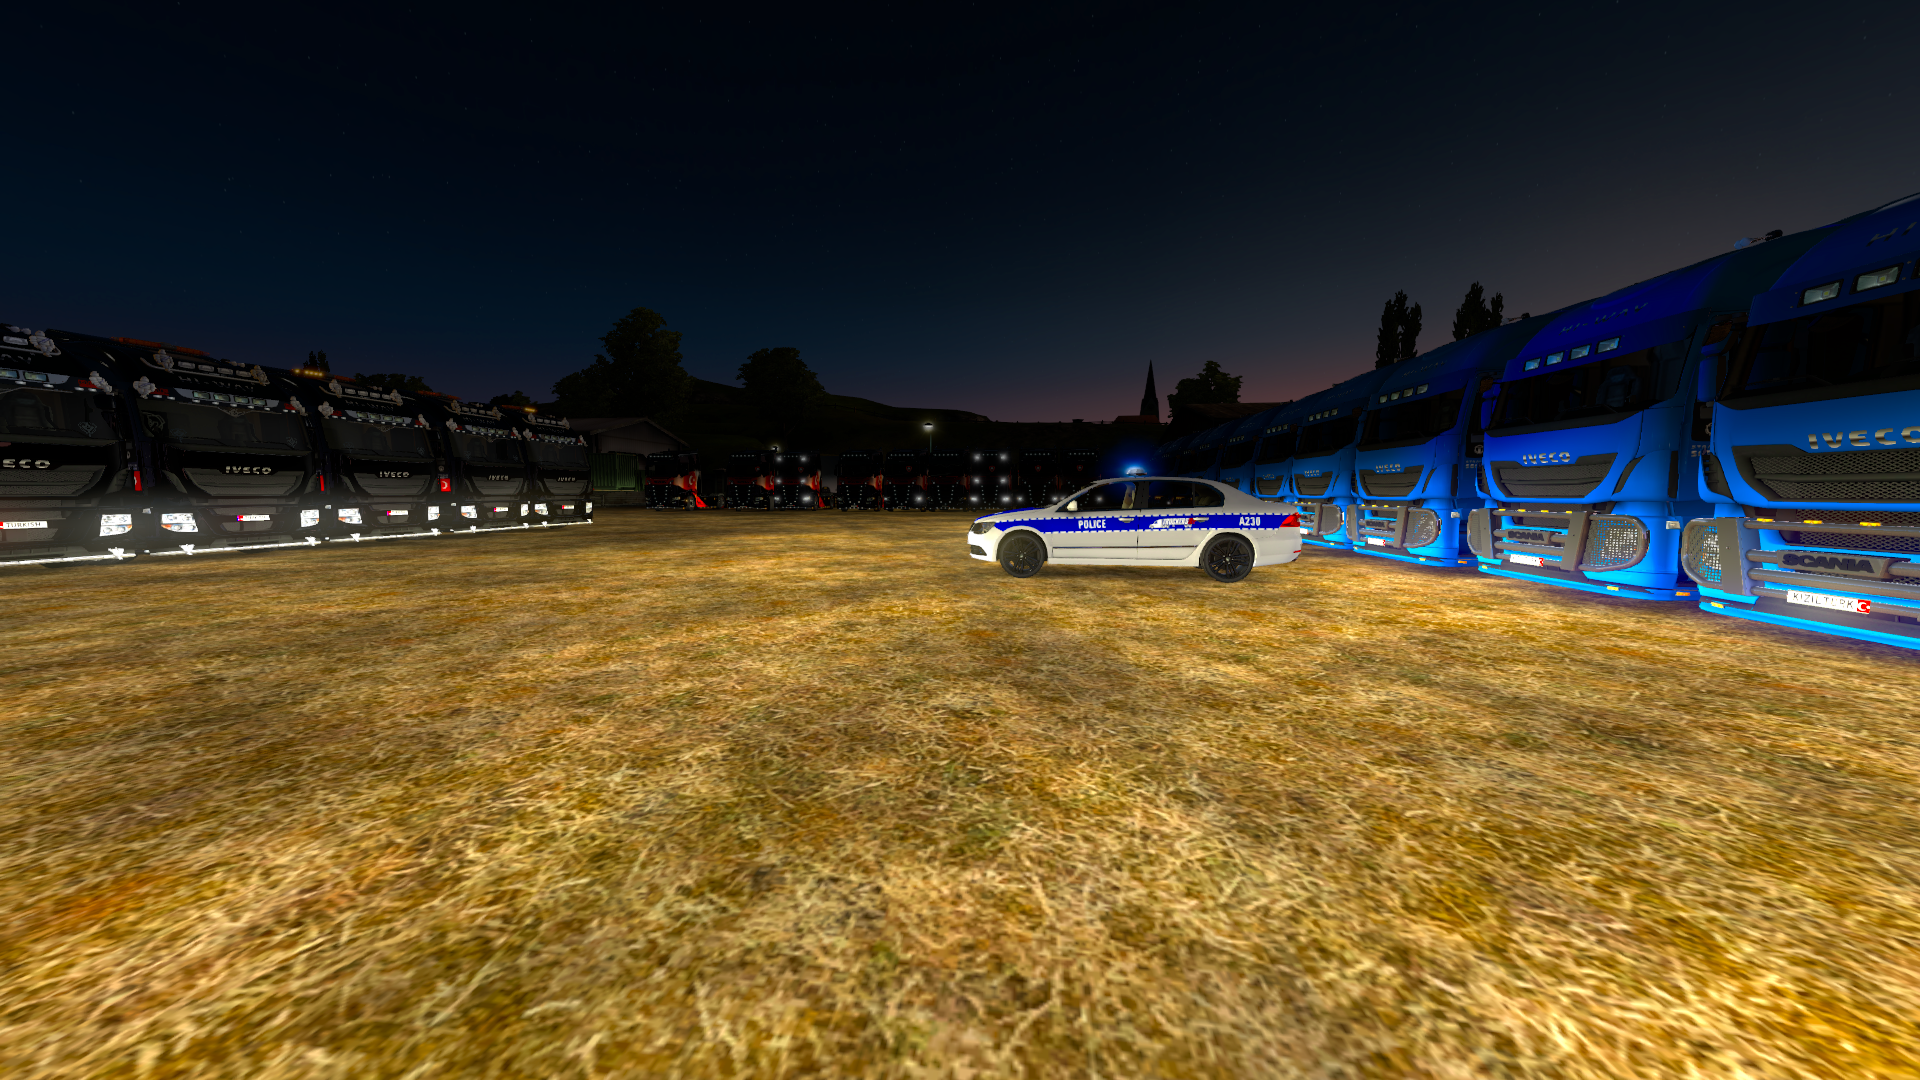 ets2_20190427_214431_00.png